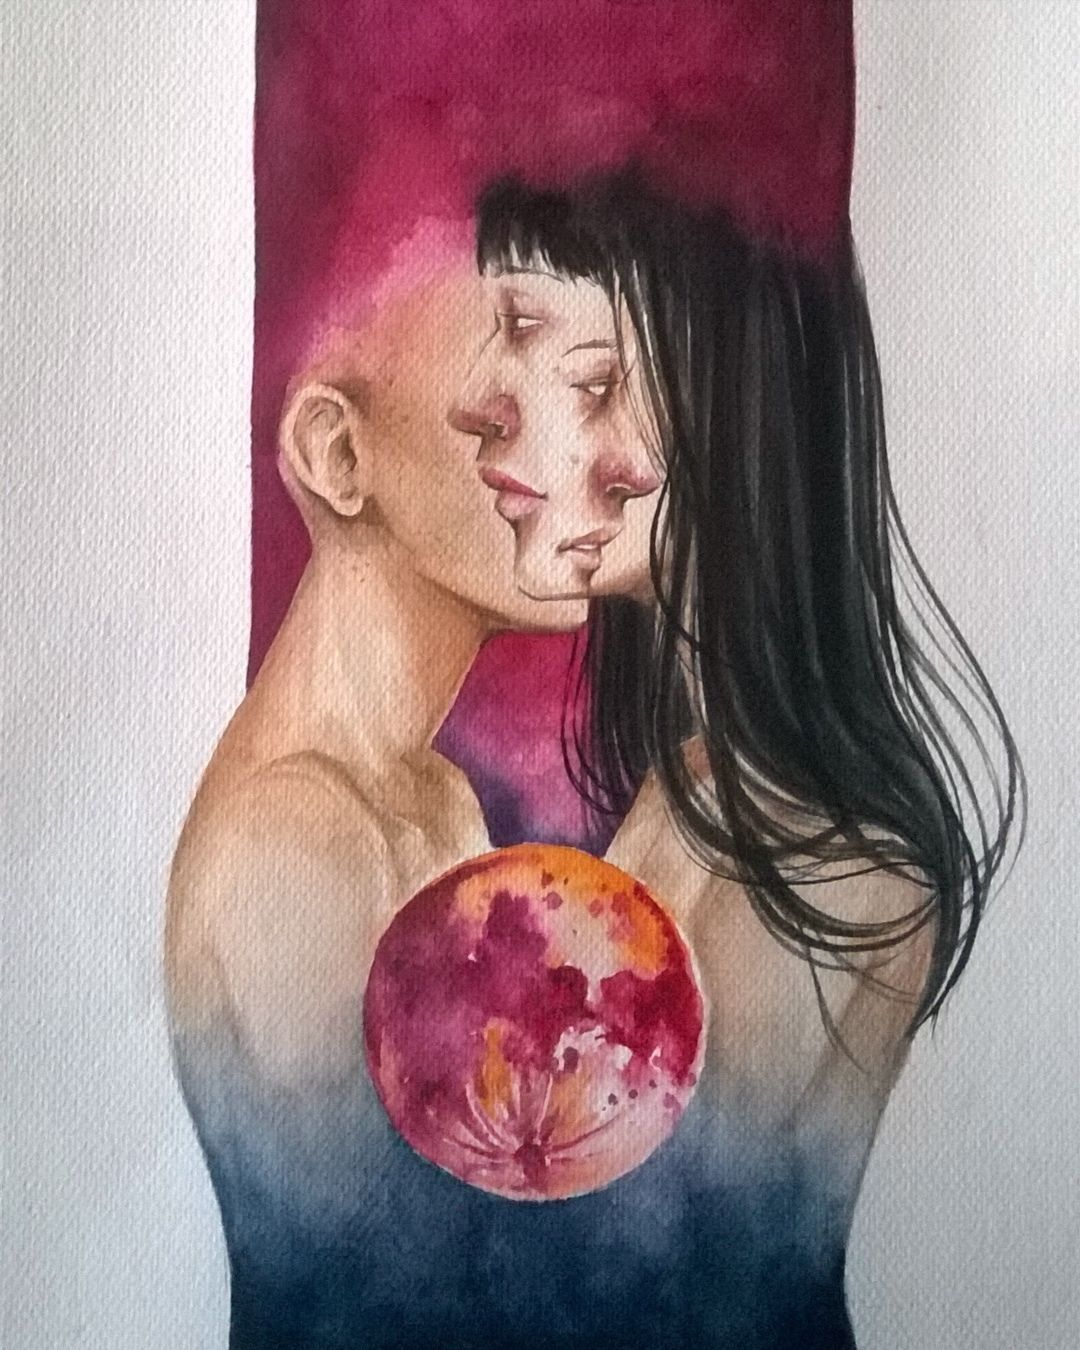 I want you to remove this sense of loneliness #watercolor #art #drawing #doubleexposure by mawardp